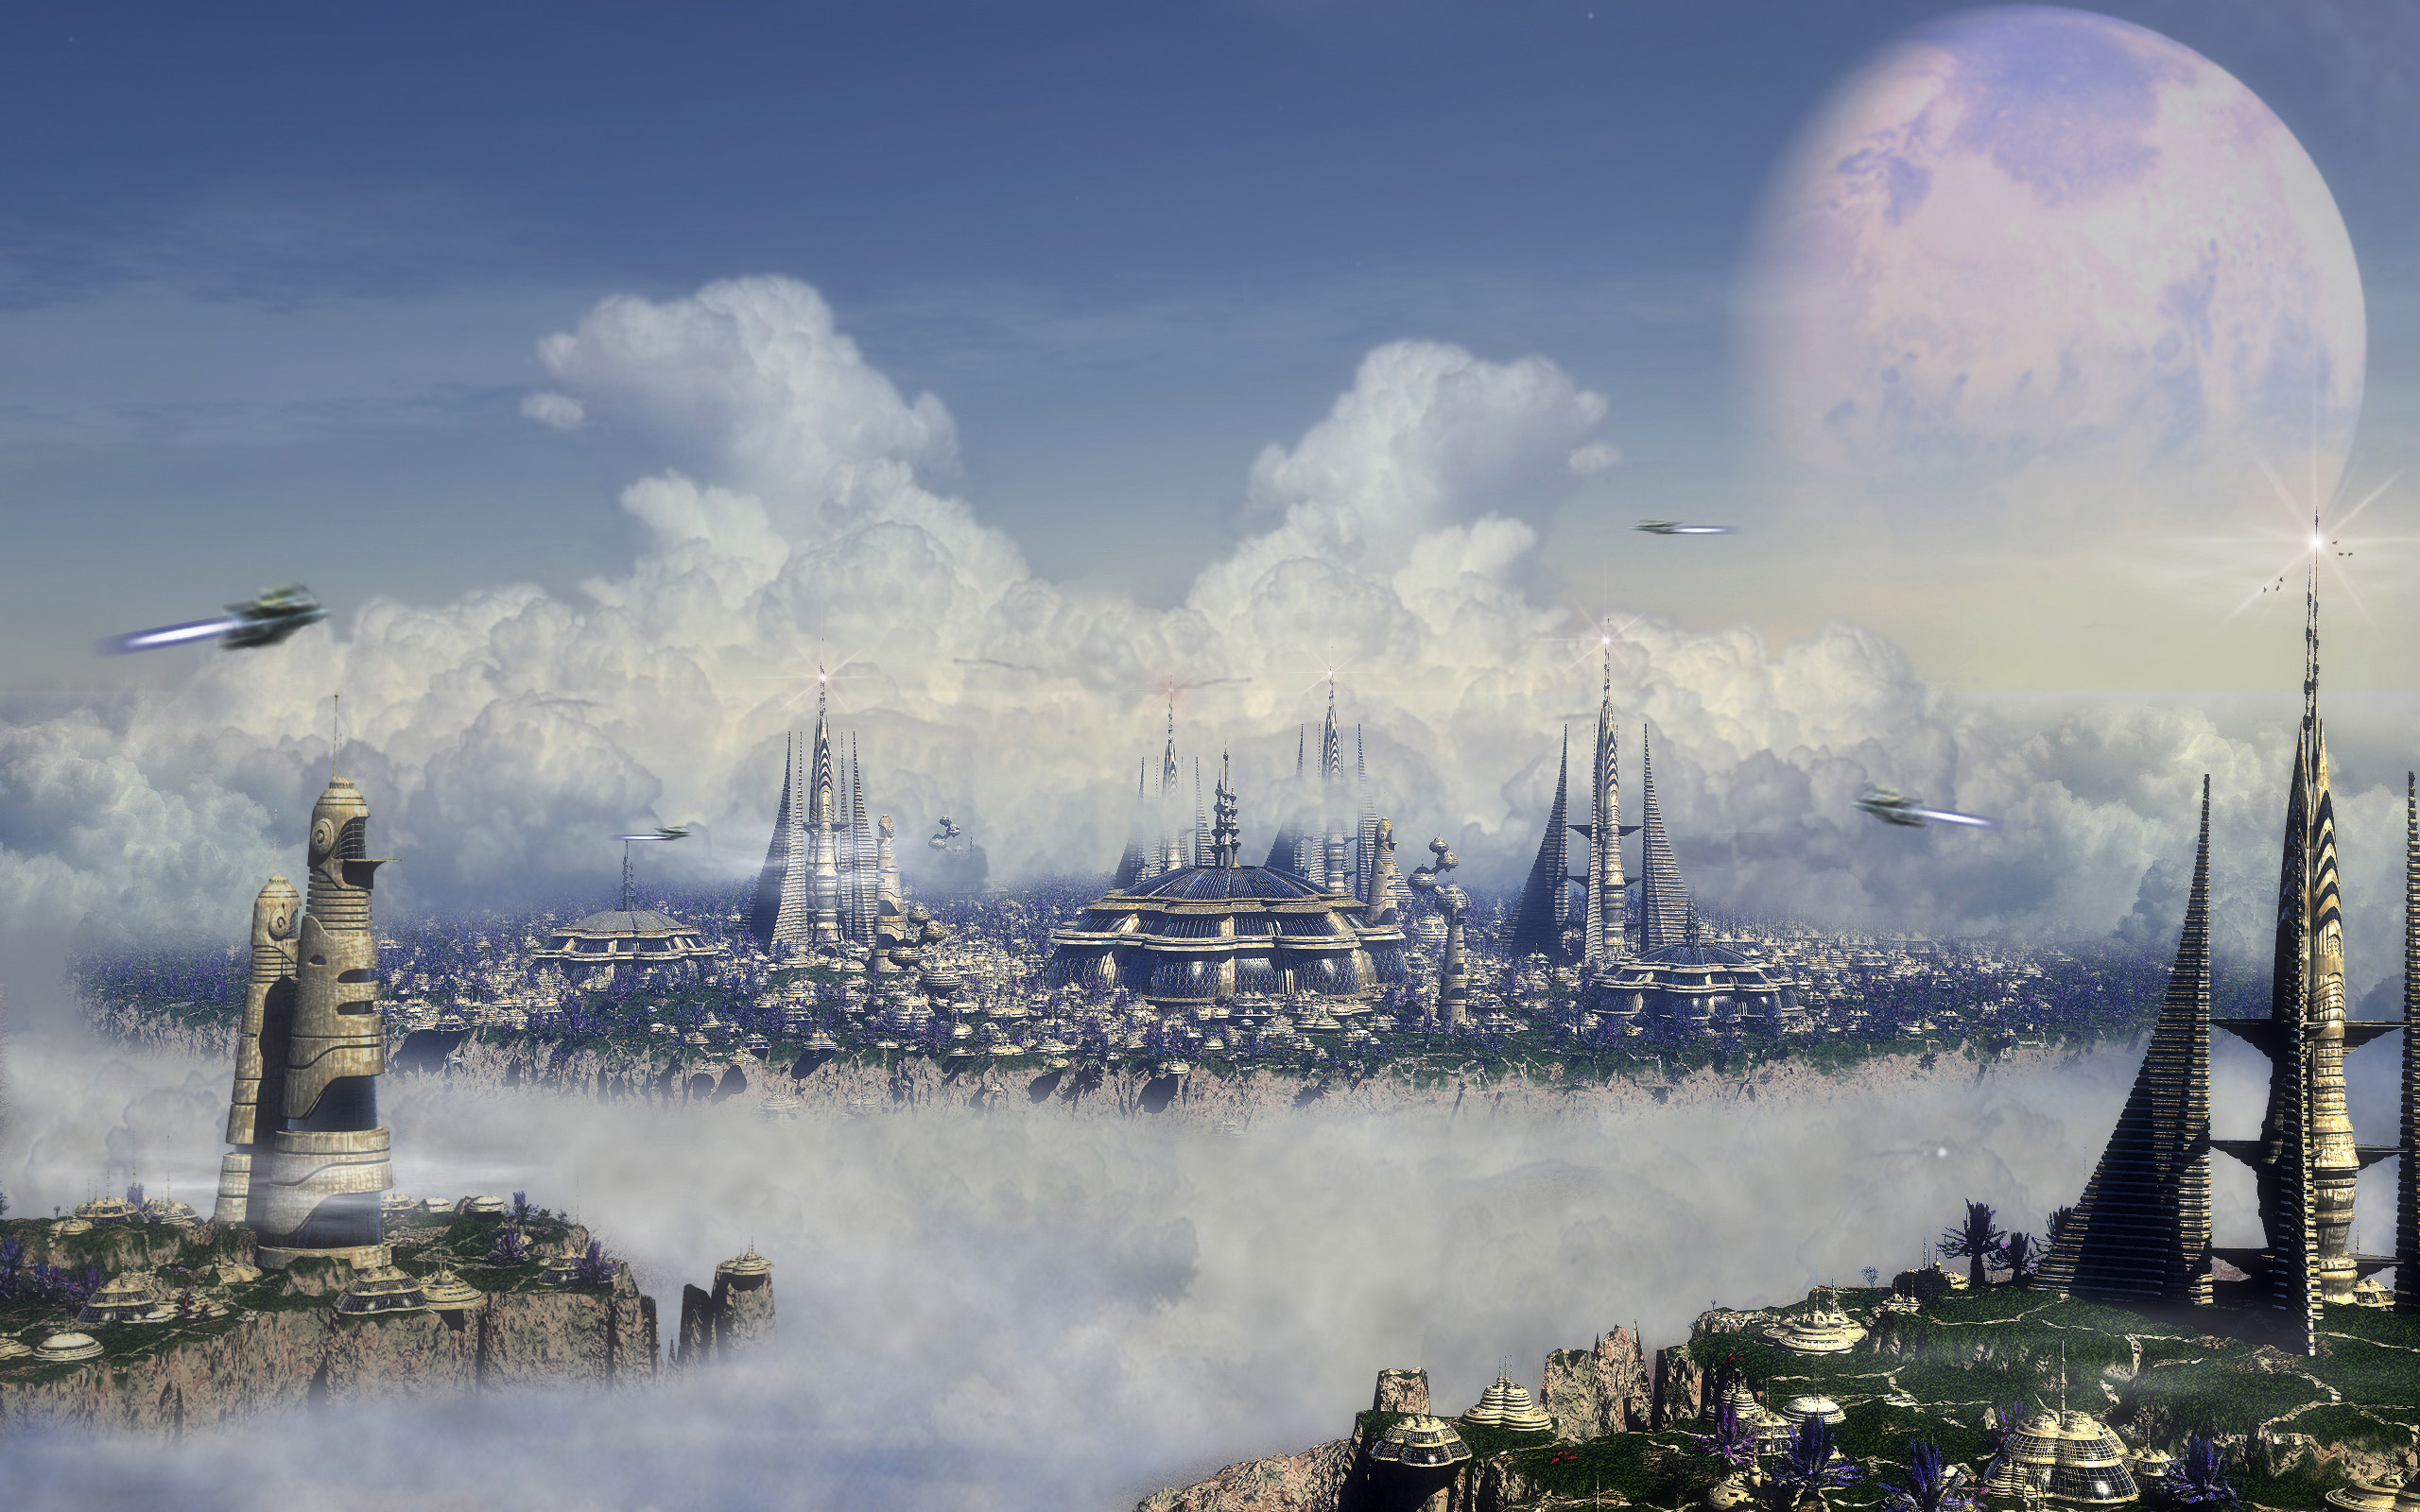 sci fi cities on other planets - photo #15